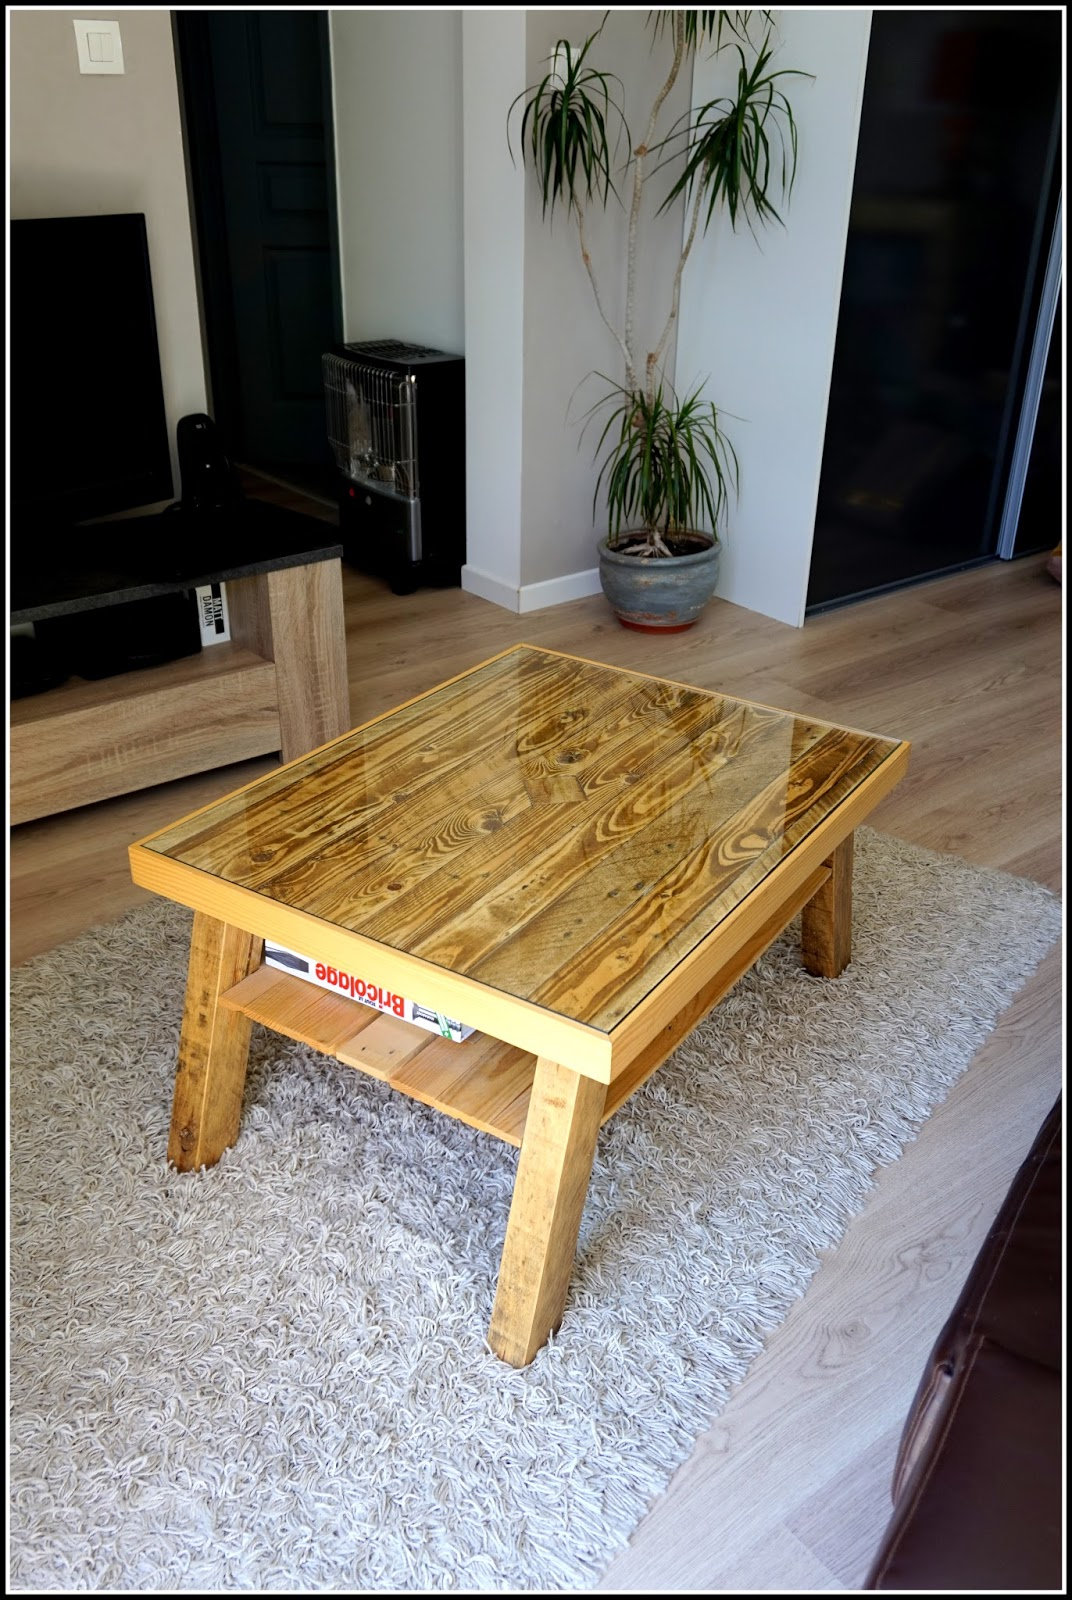 Comment faire une table basse en palette - Faire sa table basse ...